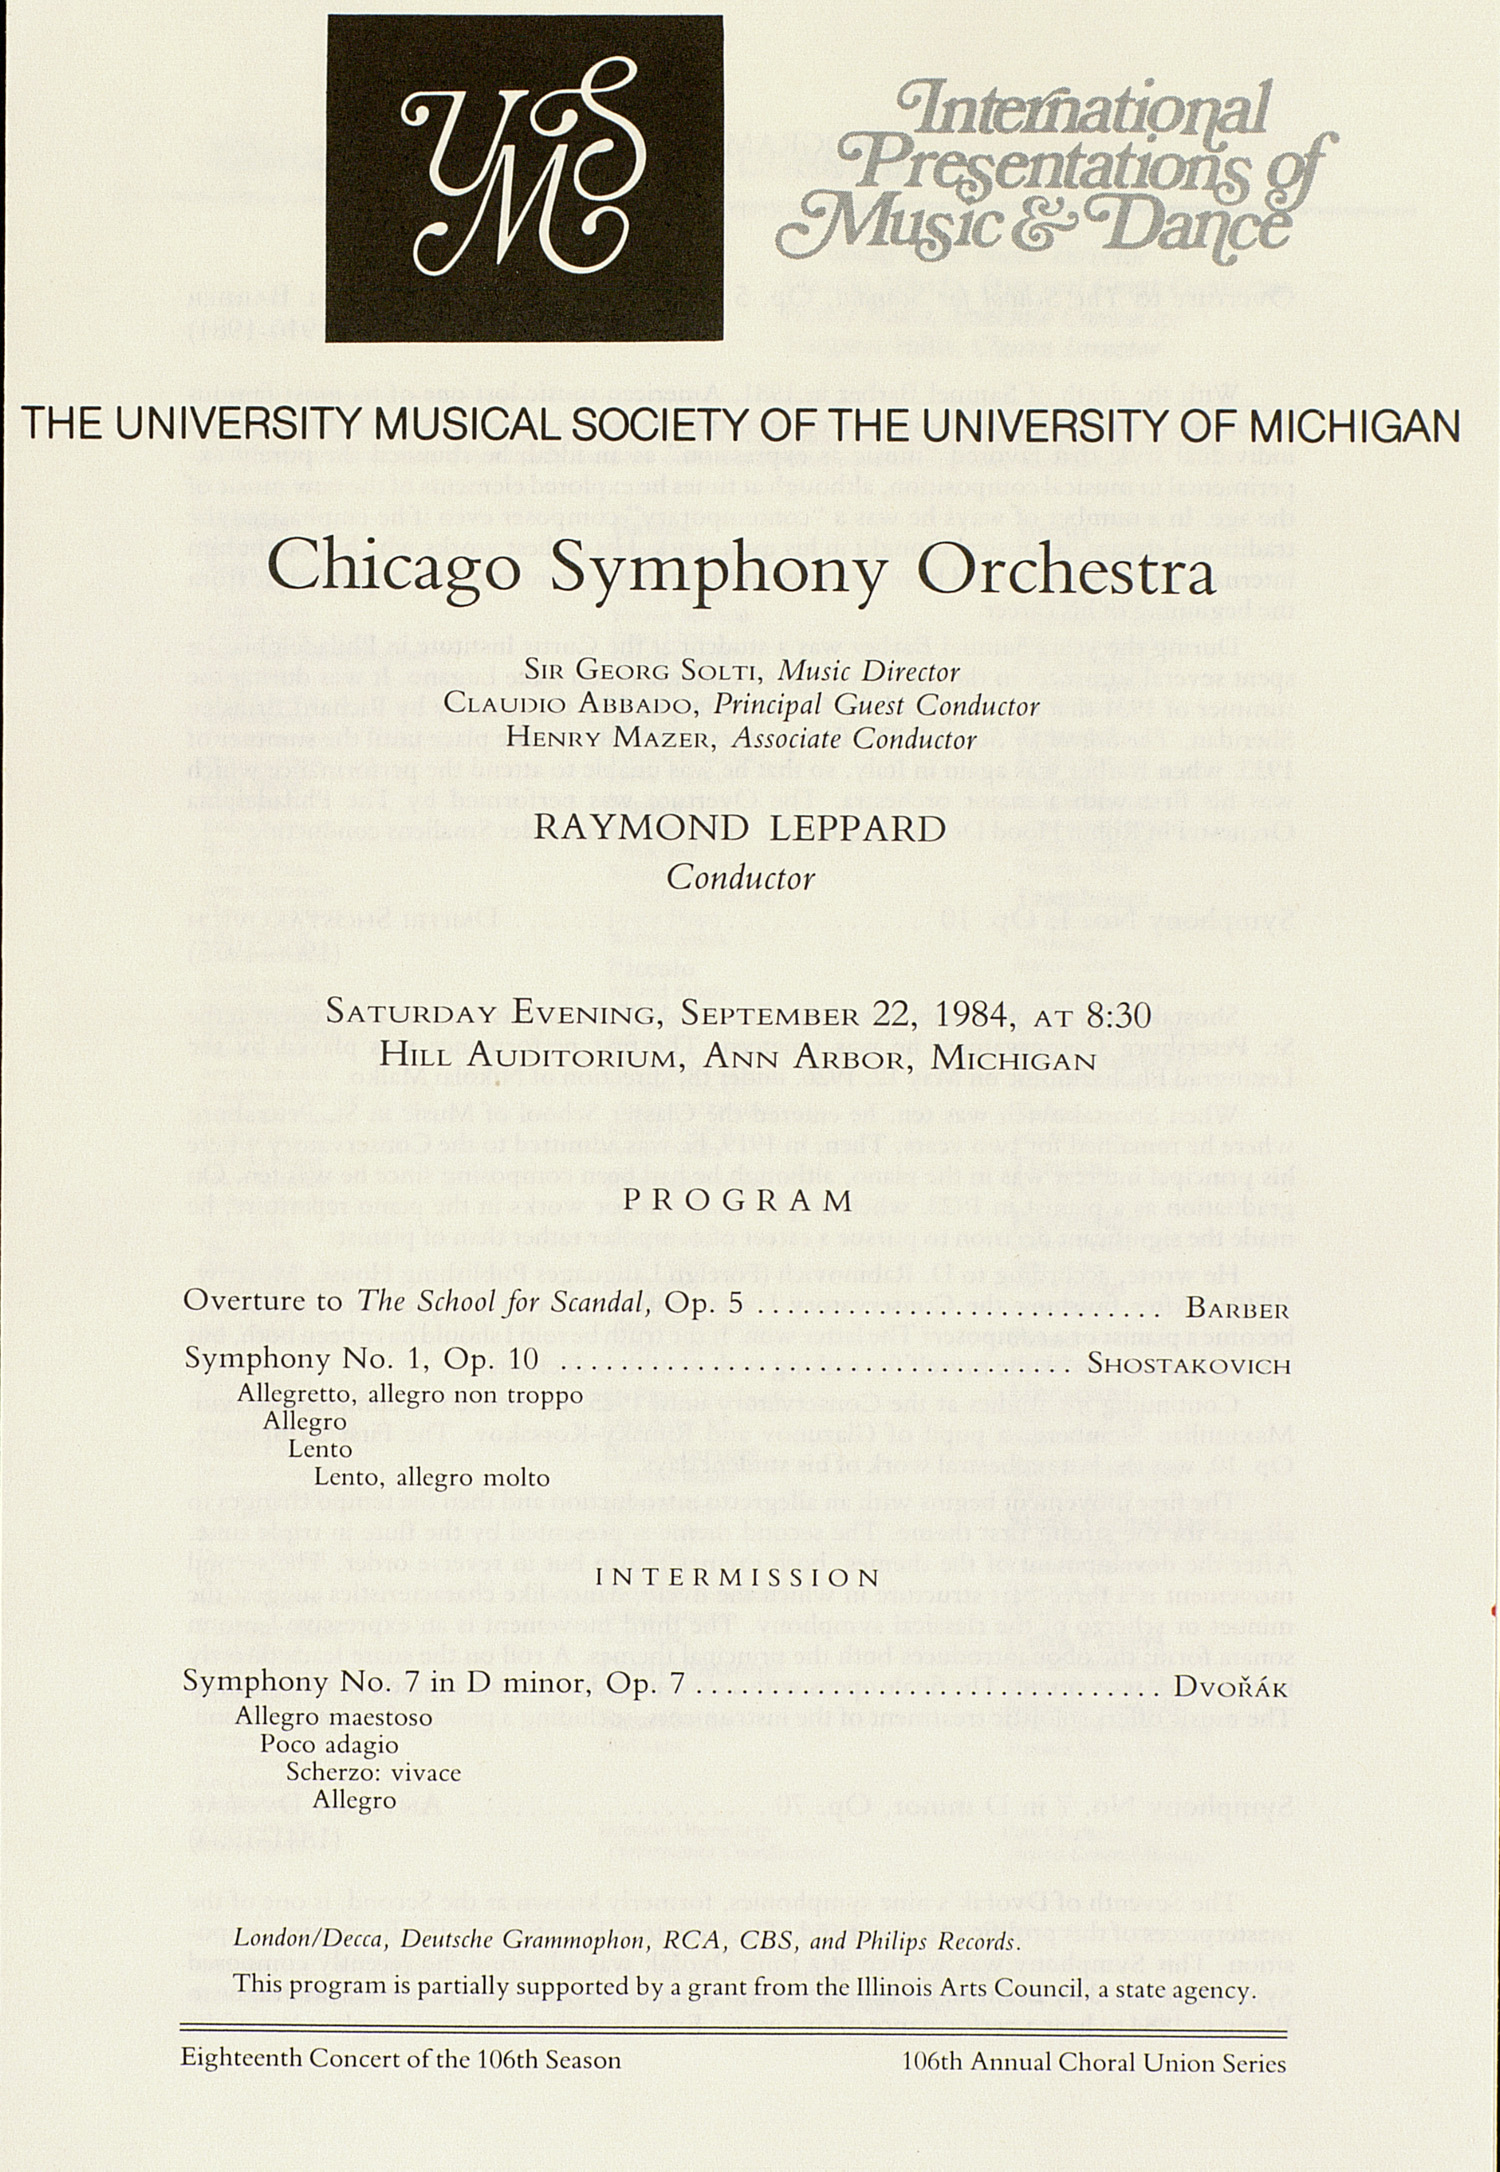 UMS Concert Program, September 22, 1984: International Presentations Of Music & Dance -- Chicago Symphony Orchestra image